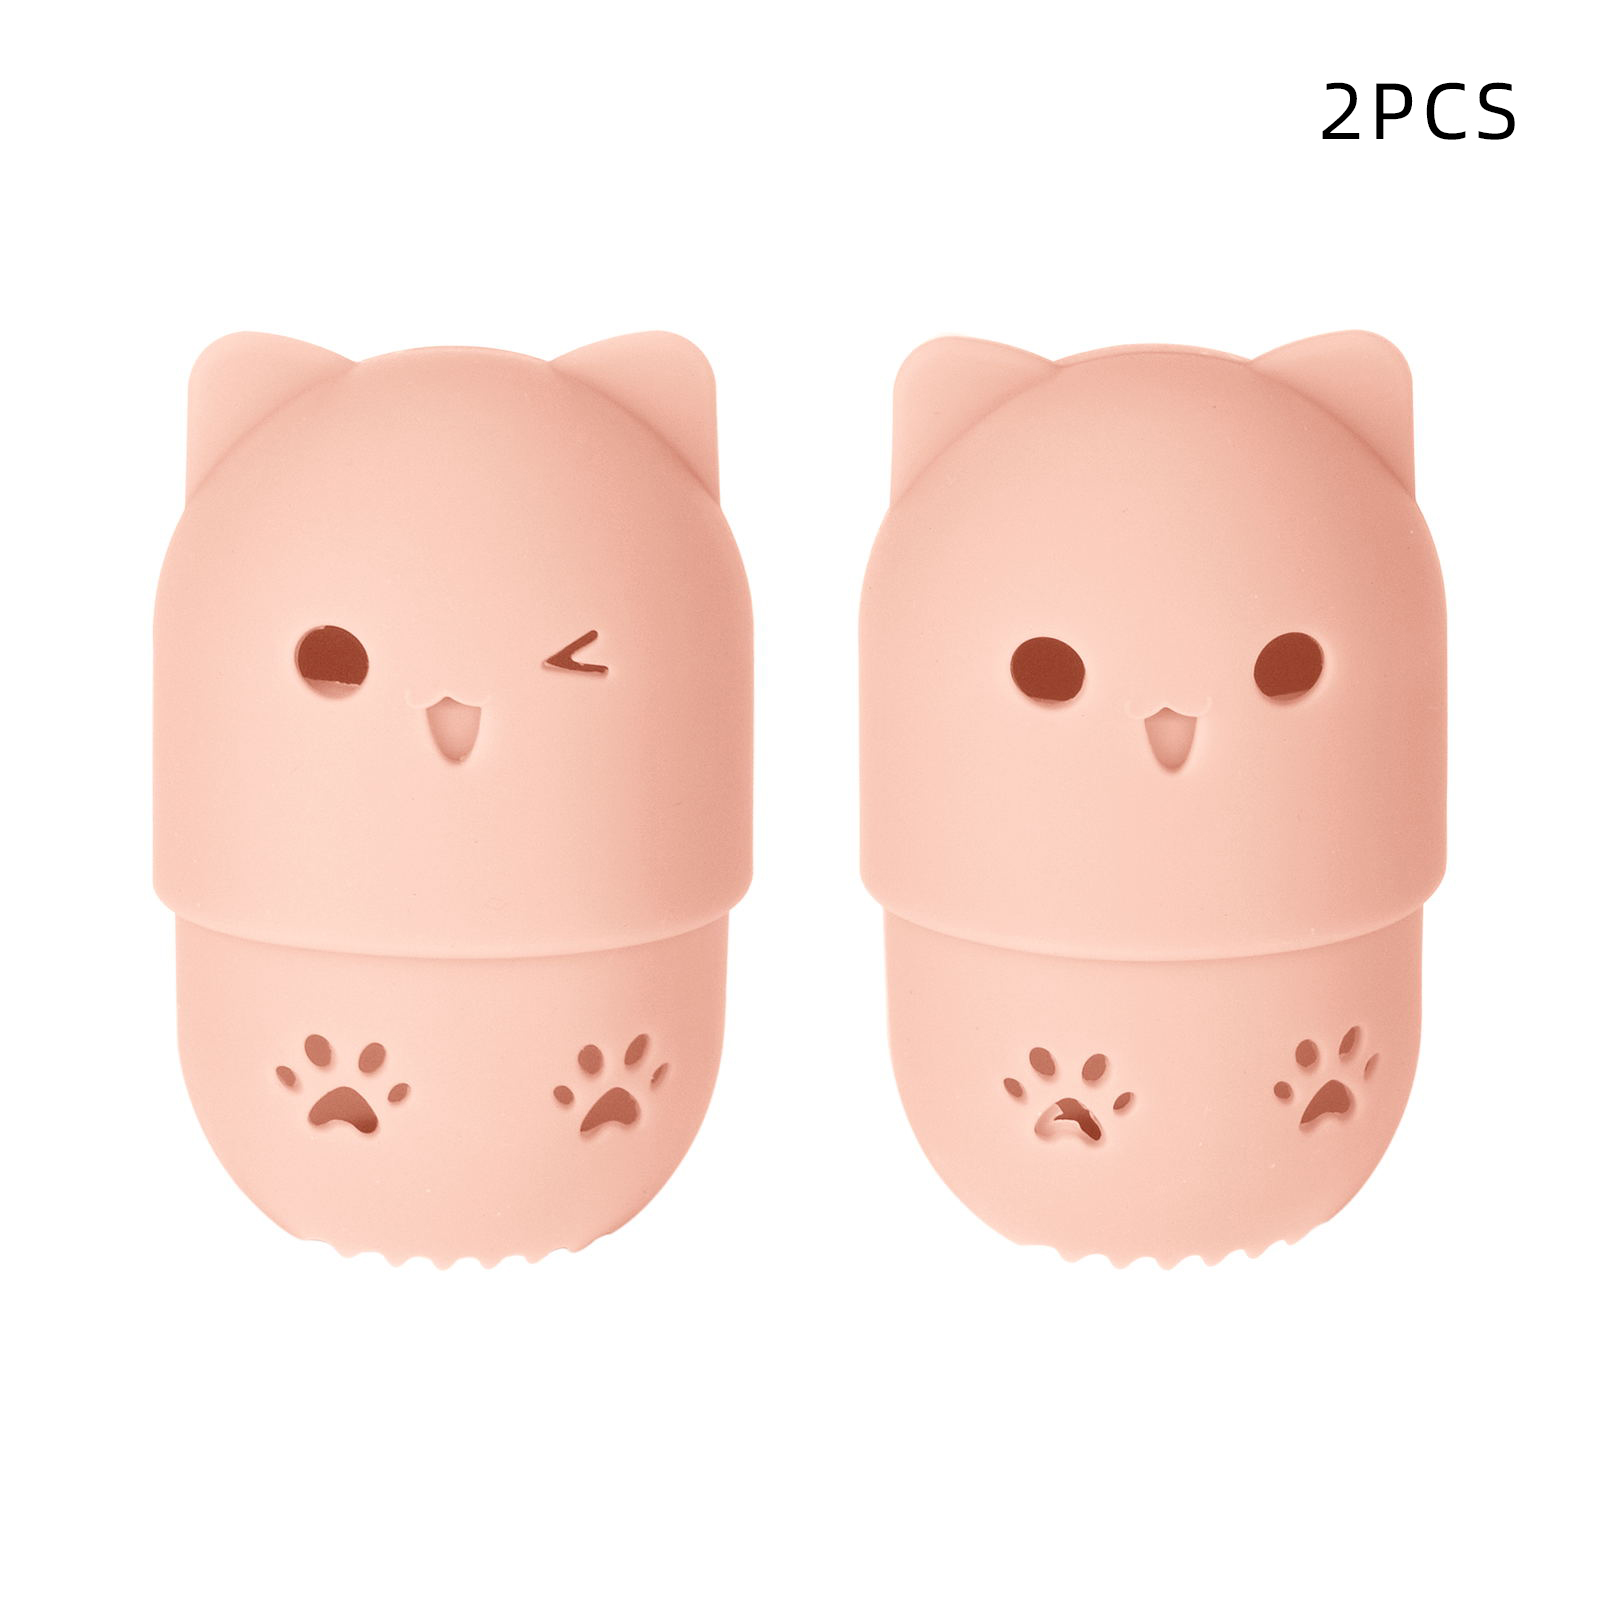 2pcs Beauty Powder Puff Case Silicone Beauty Egg Storage Eggshell Storage Box Protection Cover Case Pink